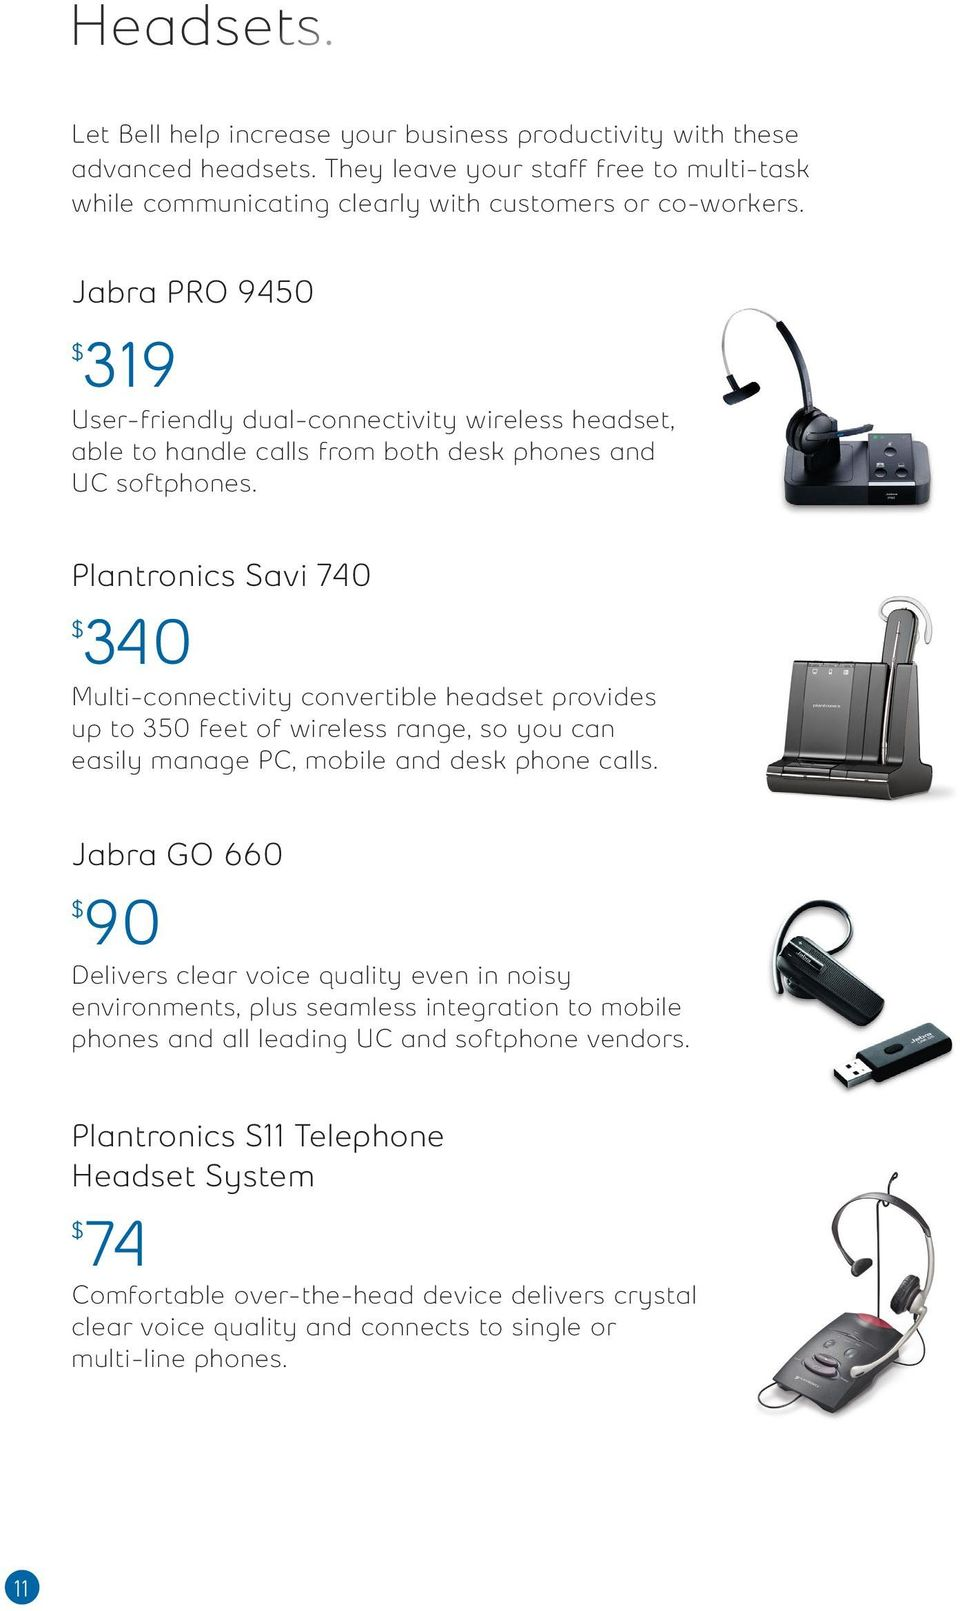 Plantronics Savi 740 340 Multi-connectivity convertible headset provides up to 350 feet of wireless range, so you can easily manage PC, mobile and desk phone calls.